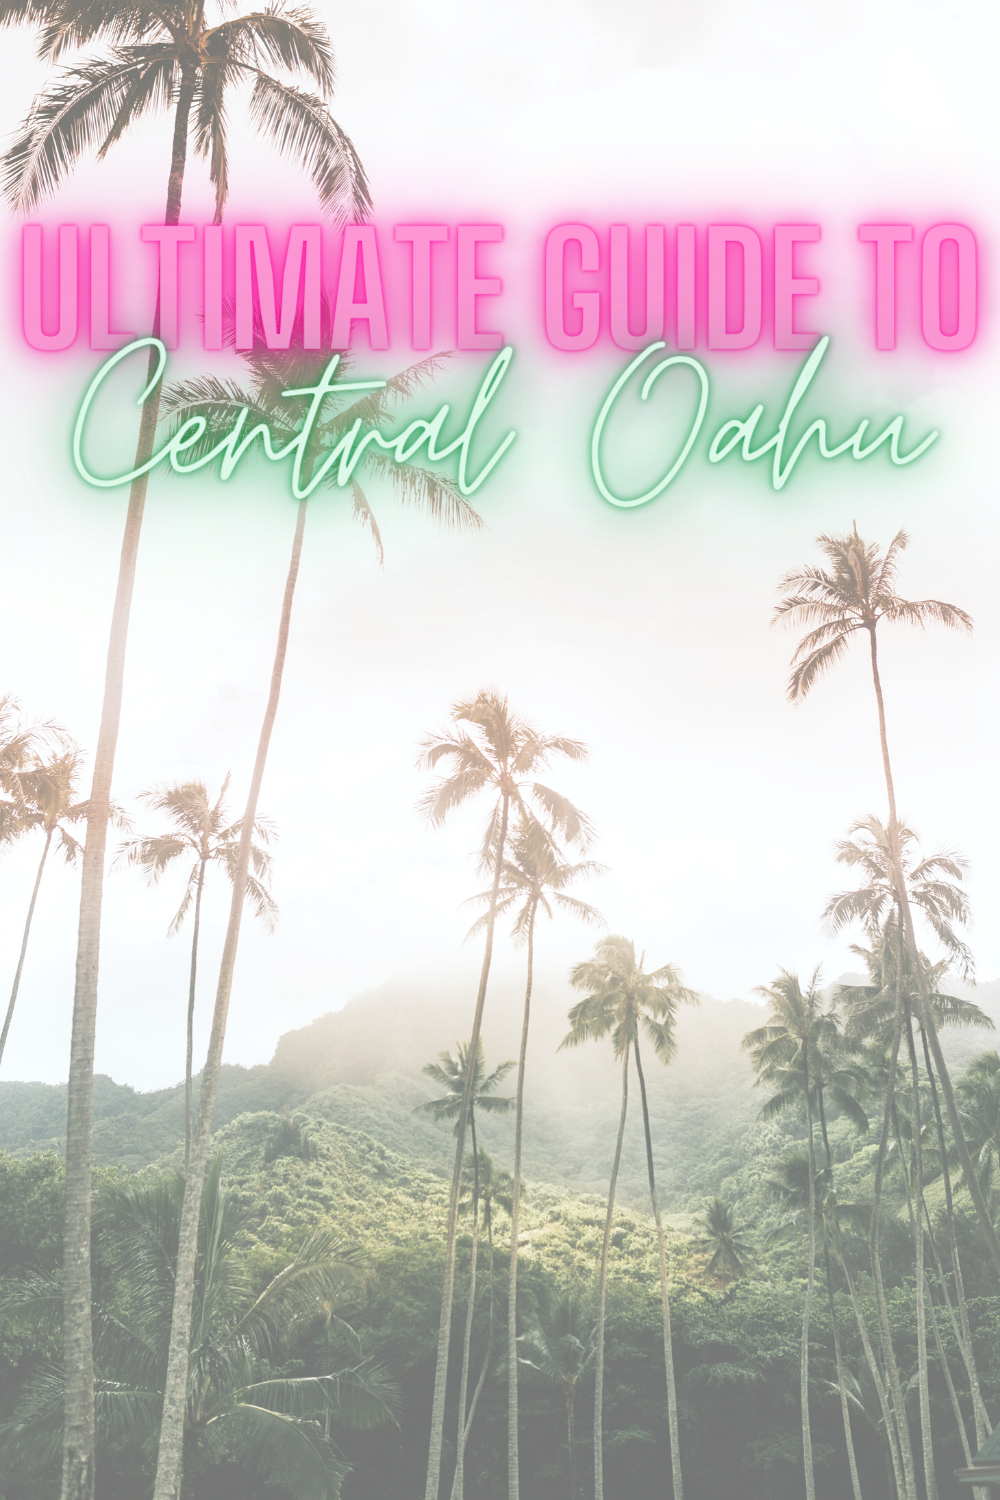 Ultimate Guide To Central Oahu - Looking for the best places to eat, shop, and live in central Oahu? Today's helpful post is sharing all of that + more! | Oahu Travel Guide - Wahiawa - Mililani - Pearl City